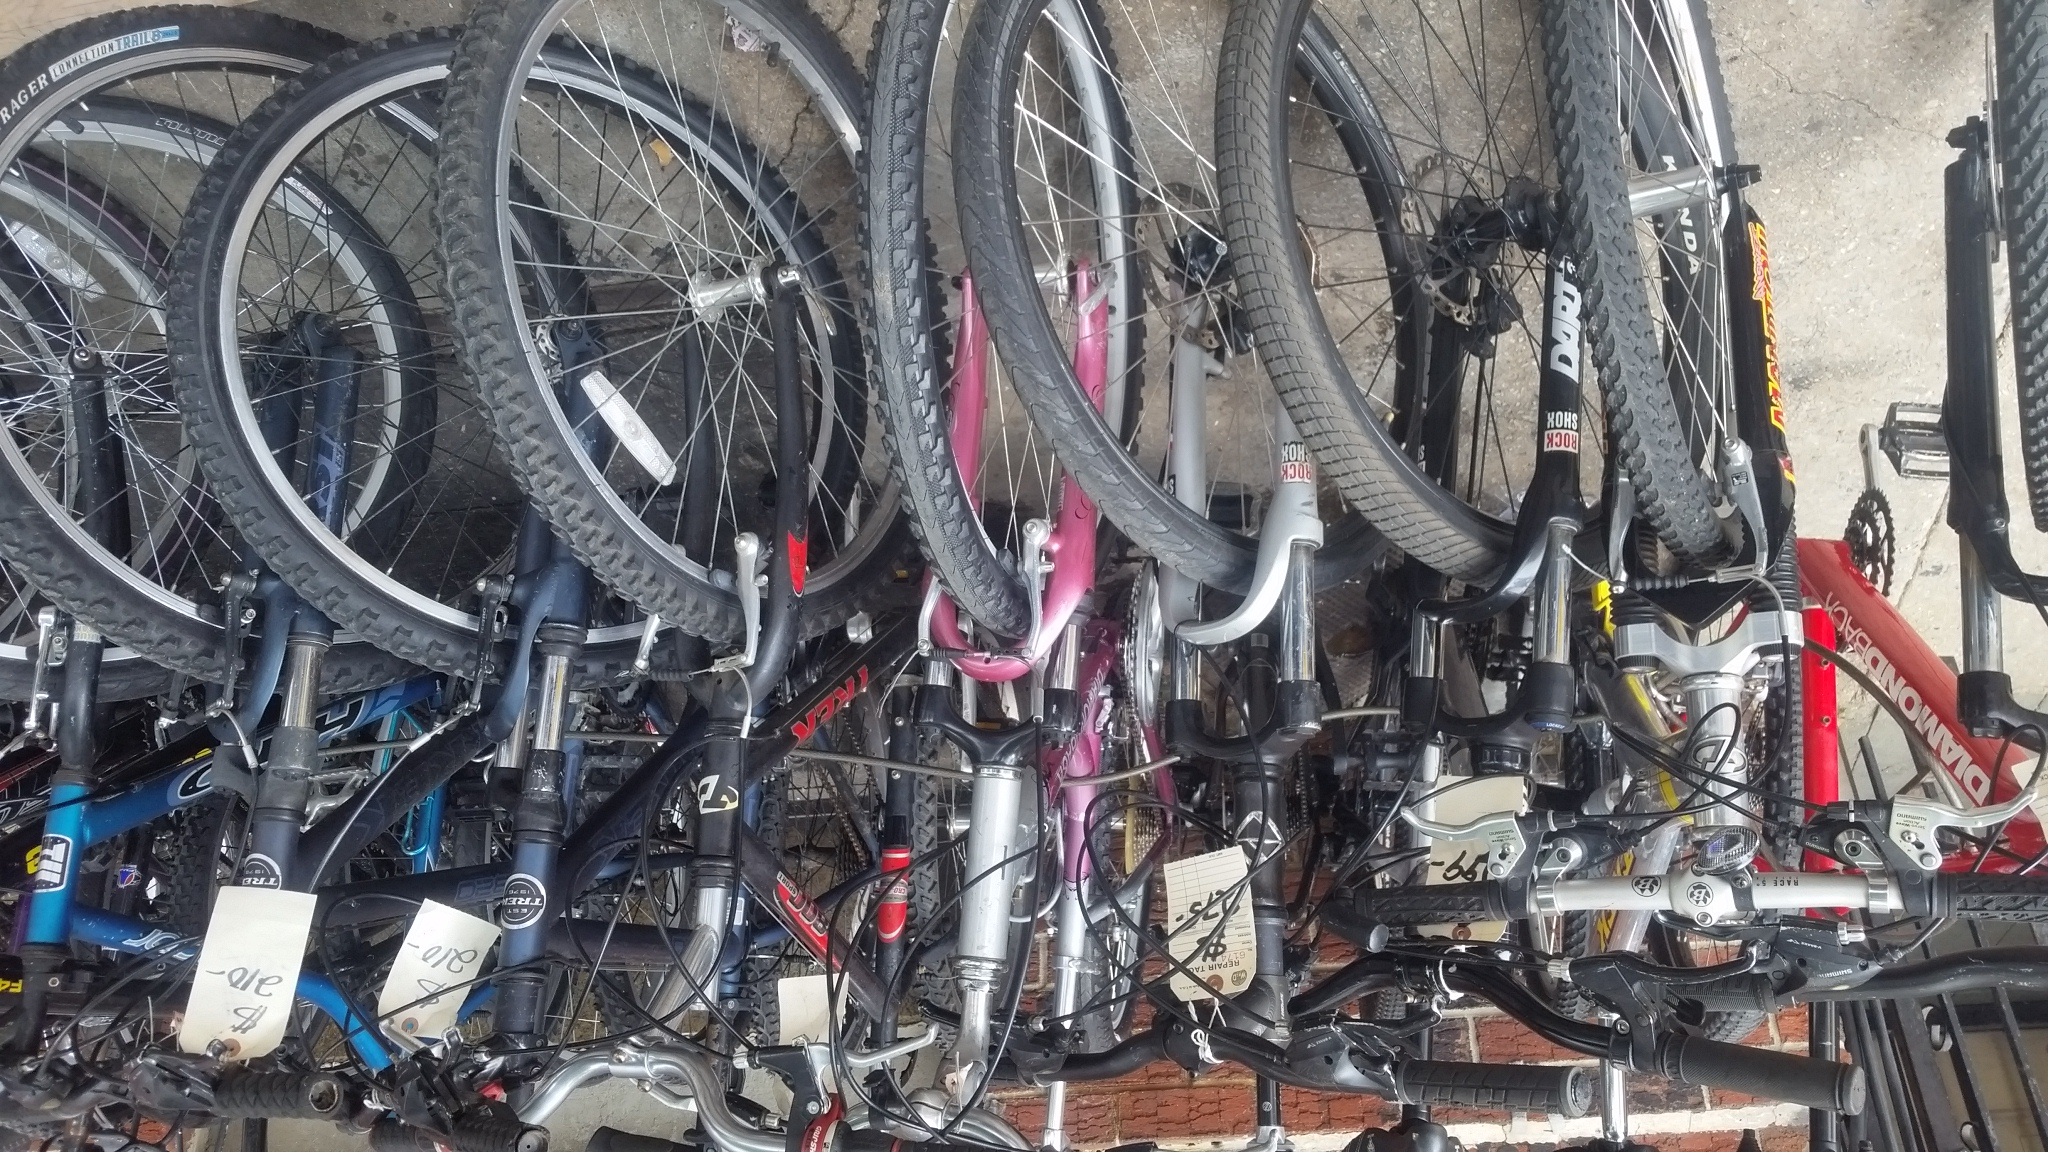 Swaray's Bike Shop